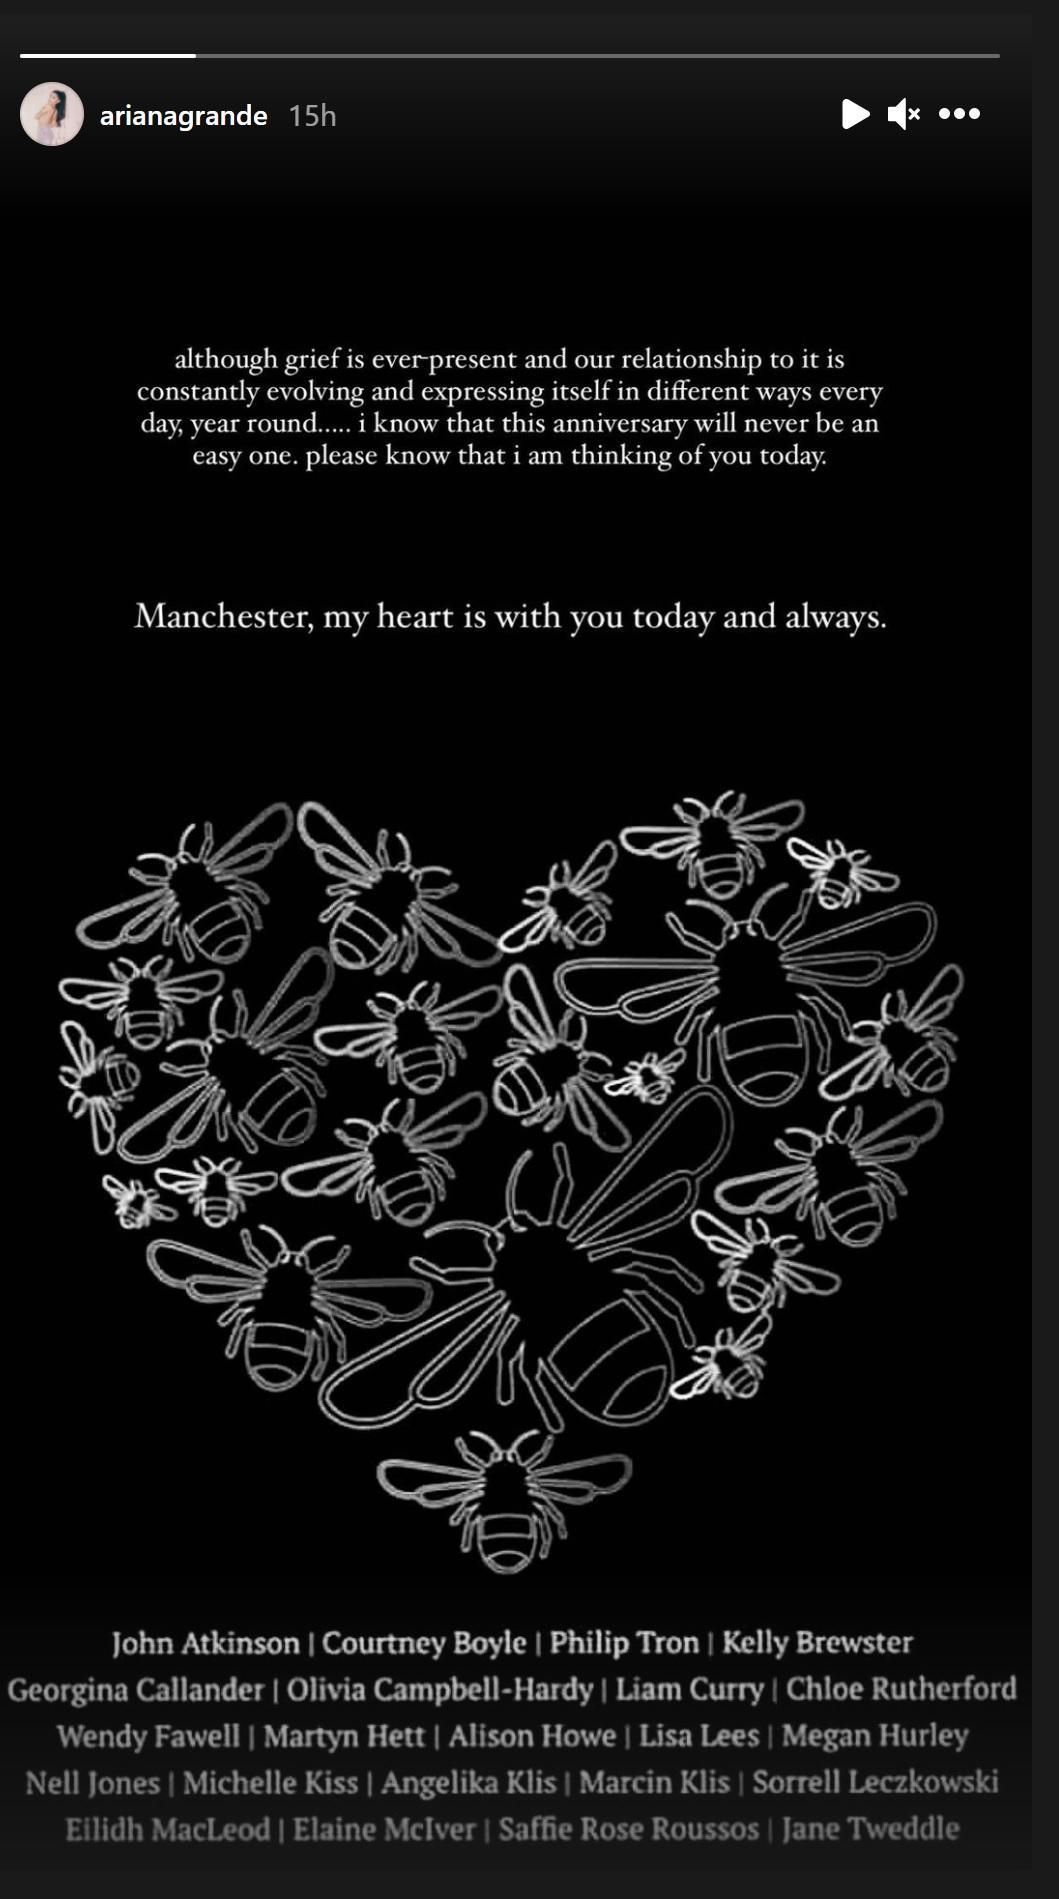 A tribute to the victims of the Manchester Arena victims on Ariana Grande's Instagram story